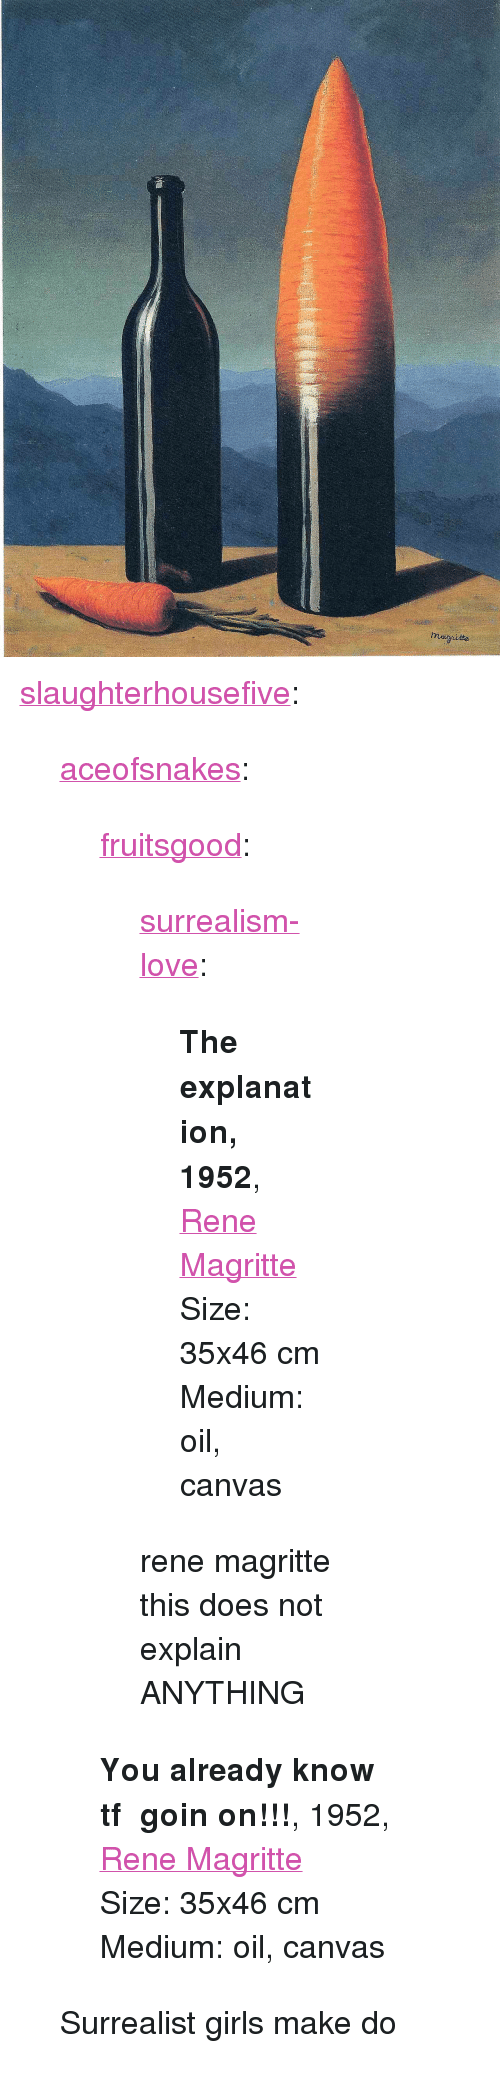 """surrealism: <p><a href=""""http://slaughterhousefive.tumblr.com/post/165061423926/aceofsnakes-fruitsgood-surrealism-love"""" class=""""tumblr_blog"""">slaughterhousefive</a>:</p><blockquote> <p><a href=""""http://aceofsnakes.tumblr.com/post/164863702766/fruitsgood-surrealism-love-the-explanation"""" class=""""tumblr_blog"""">aceofsnakes</a>:</p> <blockquote> <p><a href=""""https://fruitsgood.tumblr.com/post/164705438697/surrealism-love-the-explanation-1952-rene"""" class=""""tumblr_blog"""">fruitsgood</a>:</p> <blockquote> <p><a href=""""https://surrealism-love.tumblr.com/post/164705258000/the-explanation-1952-rene-magrittesize-35x46-cm"""" class=""""tumblr_blog"""">surrealism-love</a>:</p> <blockquote> <p><strong>The explanation, 1952</strong>, <a href=""""http://artist-magritte.tumblr.com"""">Rene Magritte</a></p>Size: 35x46 cm<br/>Medium: oil, canvas</blockquote> <p>rene magritte this does not explain ANYTHING </p> </blockquote> <p><b>You already know tf goin on!!!</b>, 1952, <a href=""""http://artist-magritte.tumblr.com"""">Rene Magritte</a></p> <p>Size: 35x46 cm</p> <p>Medium: oil, canvas  </p> </blockquote>  <p>Surrealist girls make do</p> </blockquote>"""